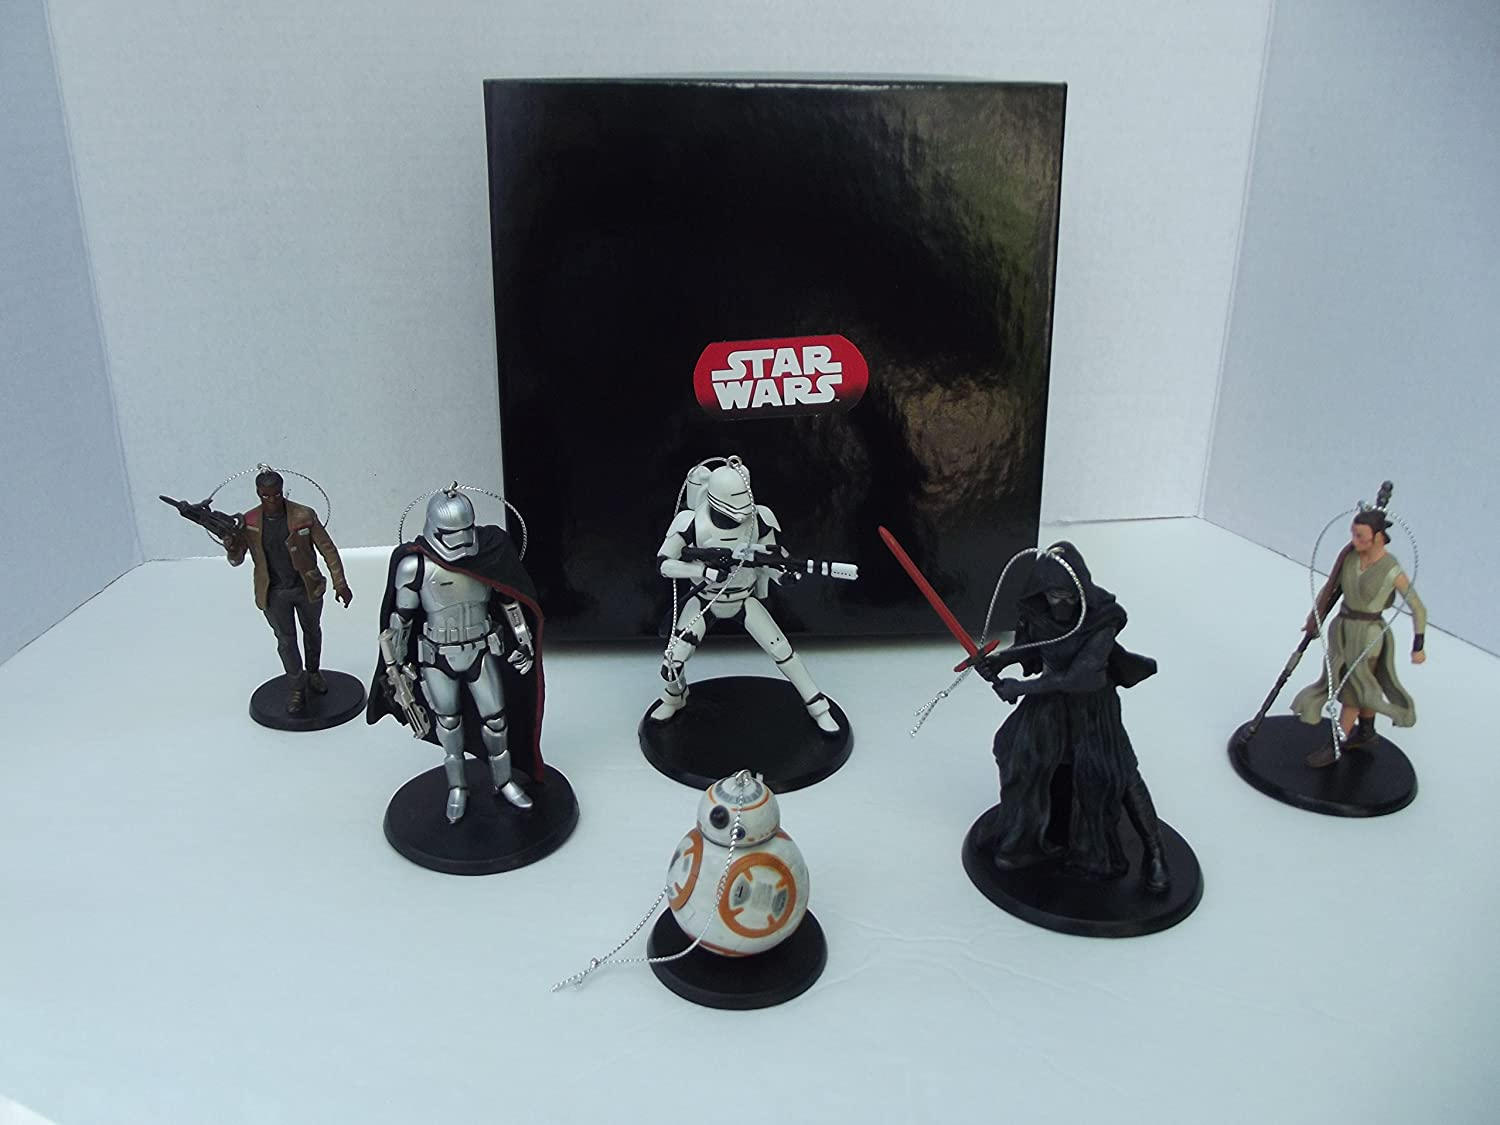 Star Wars The Force Awakens Ornaments - Disney's Star Wars